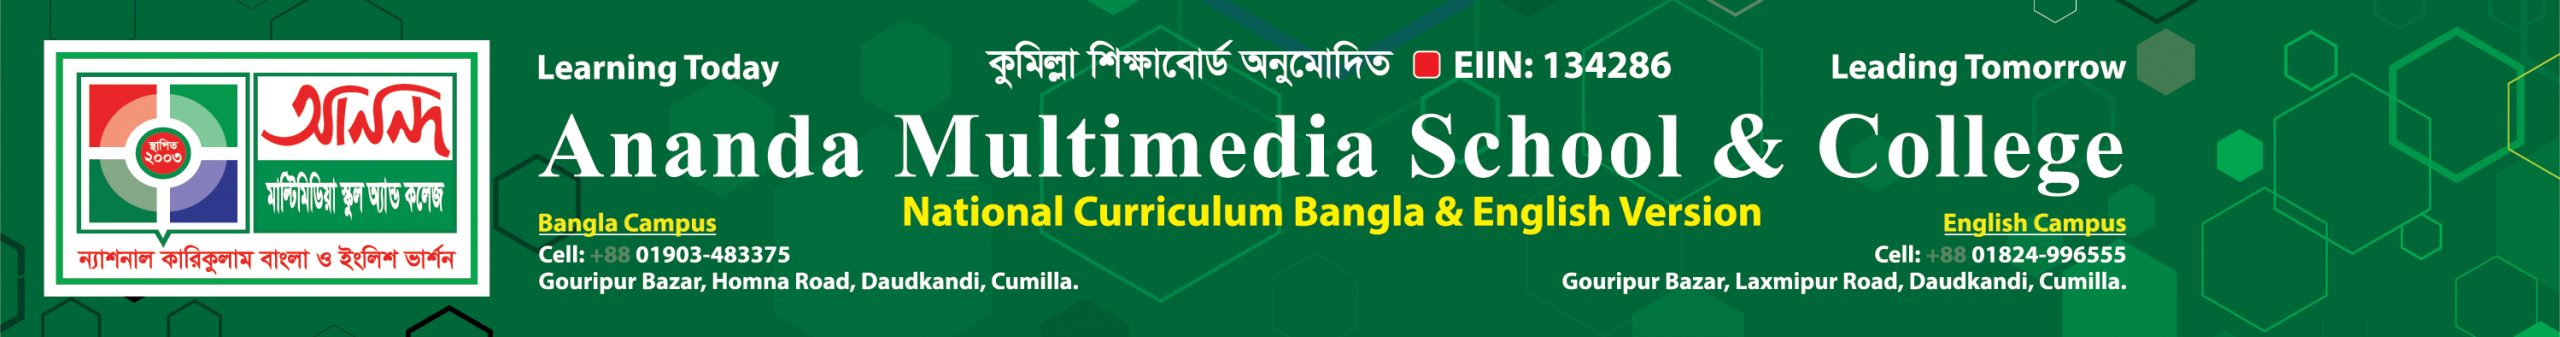 Ananda Multimedia School & College